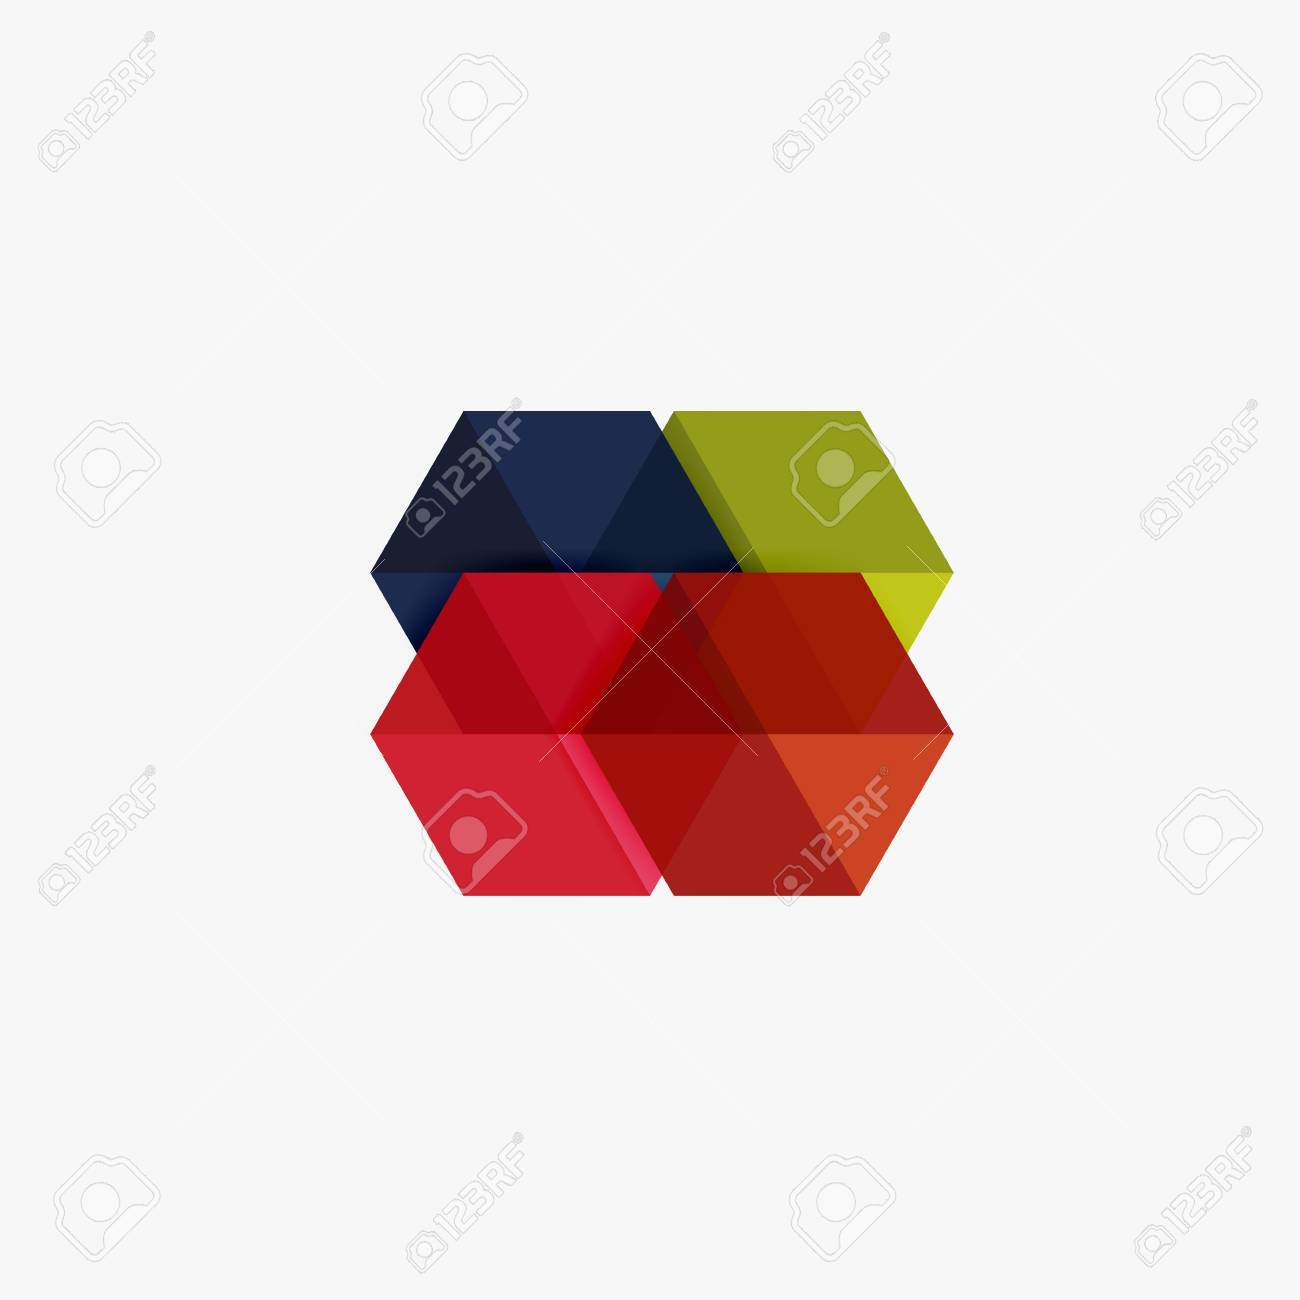 Blank Geometrische Abstrakte Business-Vorlagen, Hexagon-Layouts ...